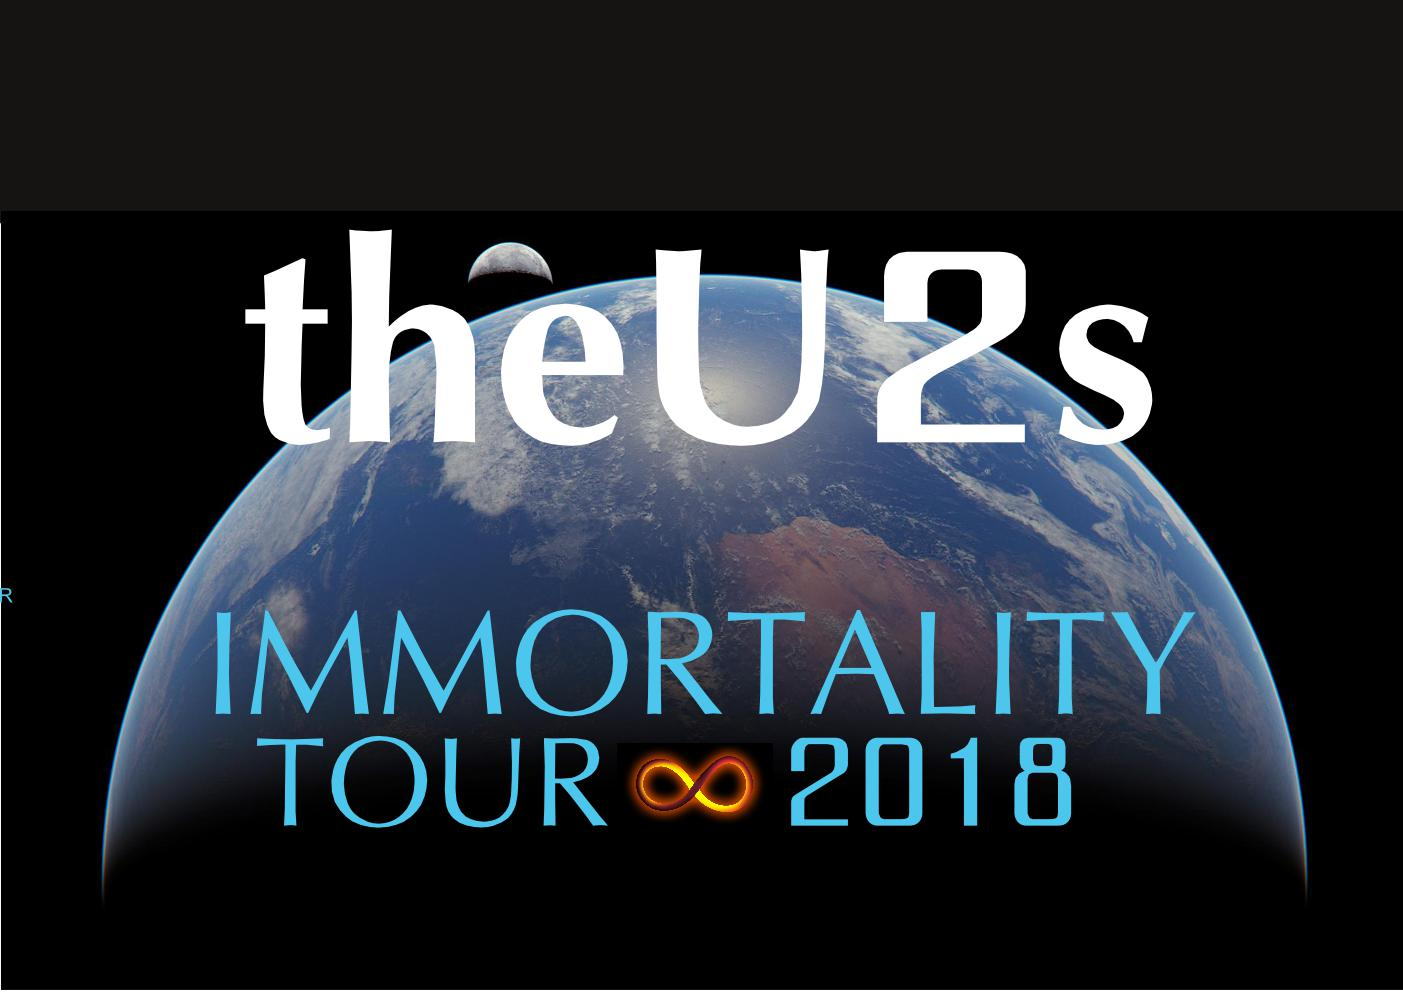 immortality tour 2018